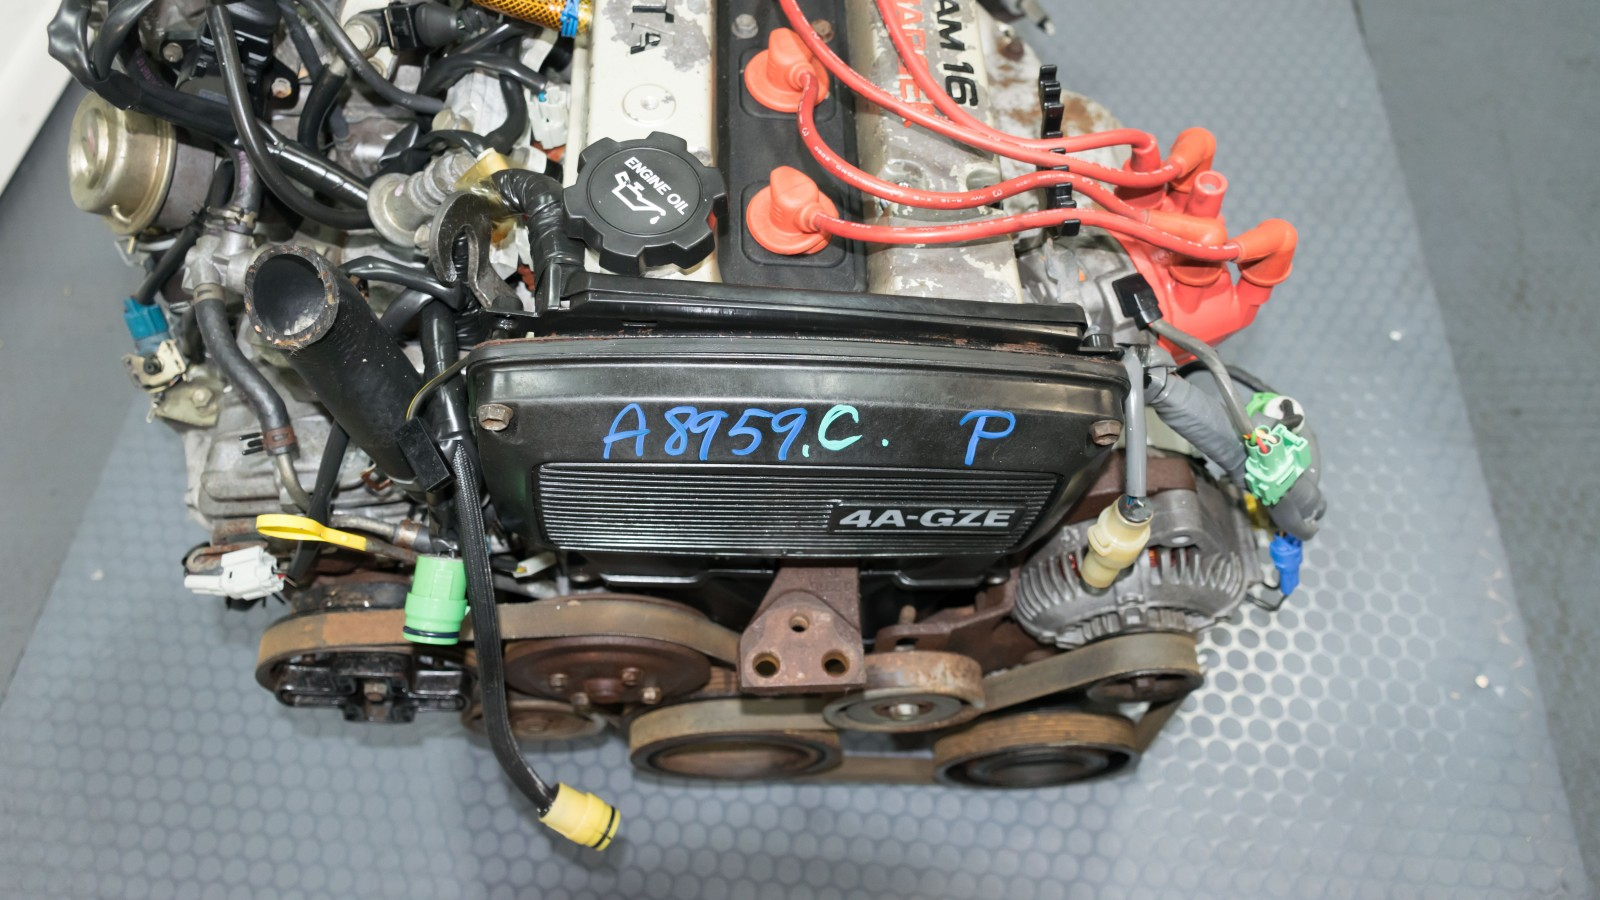 Jdm Toyota Mr2 4agze Supercharged Engine With 5 Speed